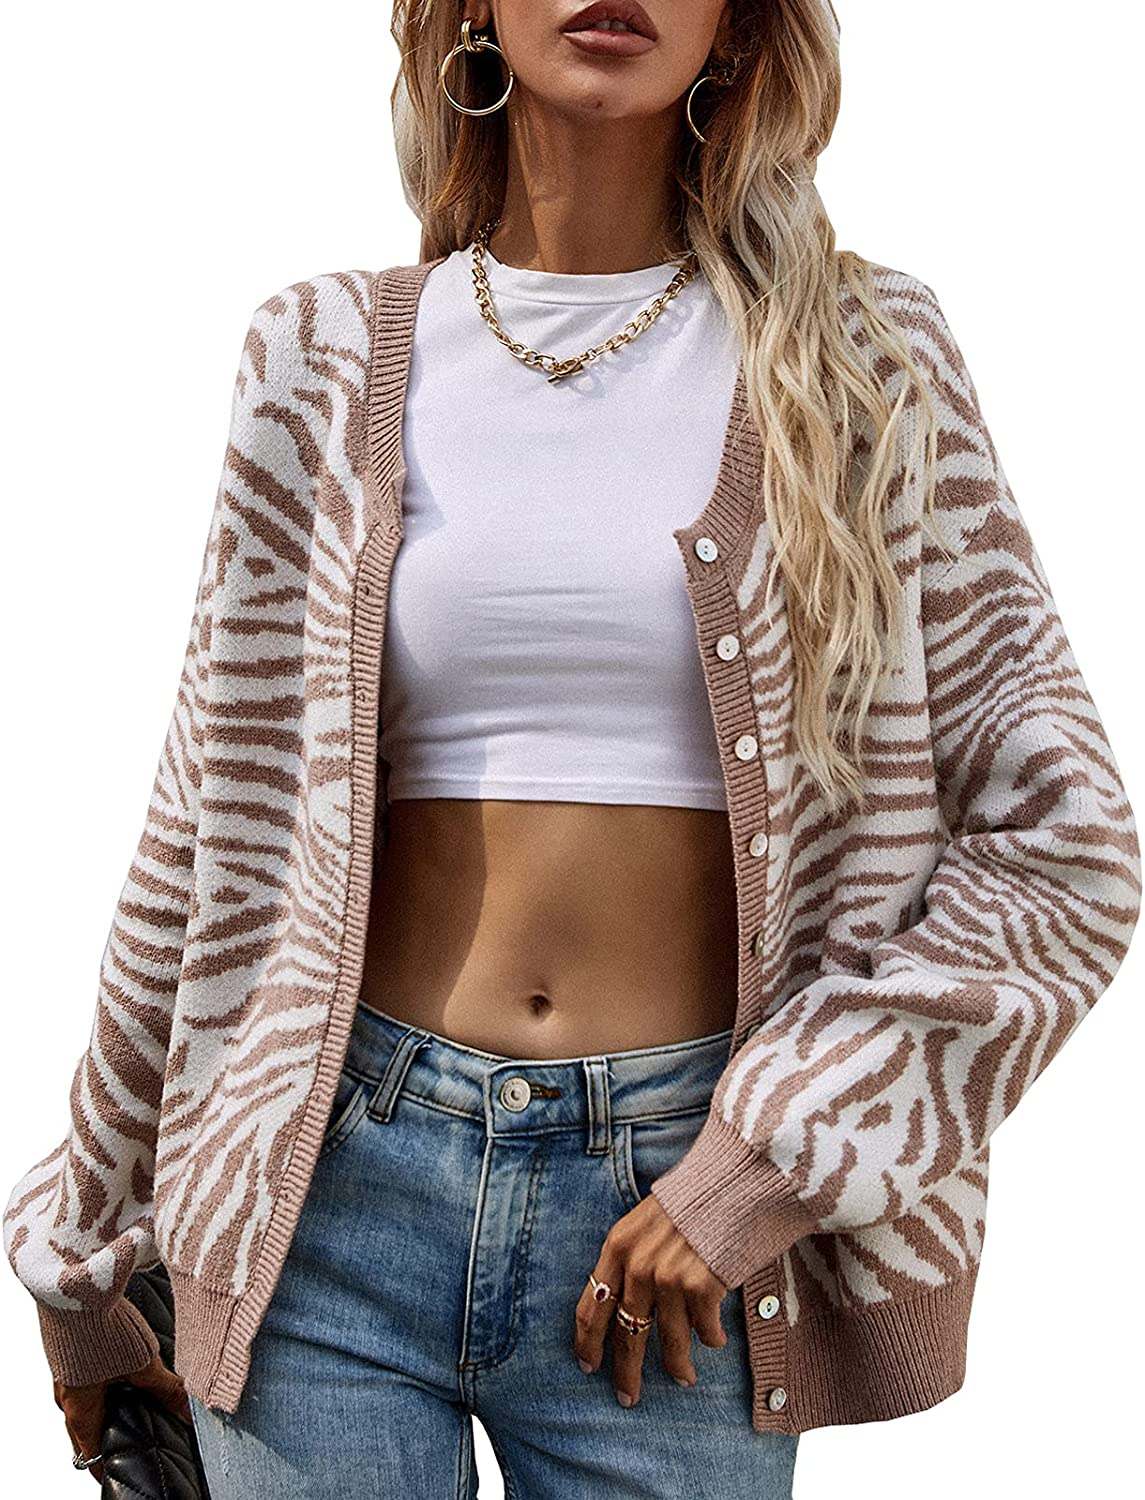 kinstell Women's Printing Striped Open Front Knit Button Down Crew Neck Long Sleeve Casual Cardigan Sweater Outwear Coat